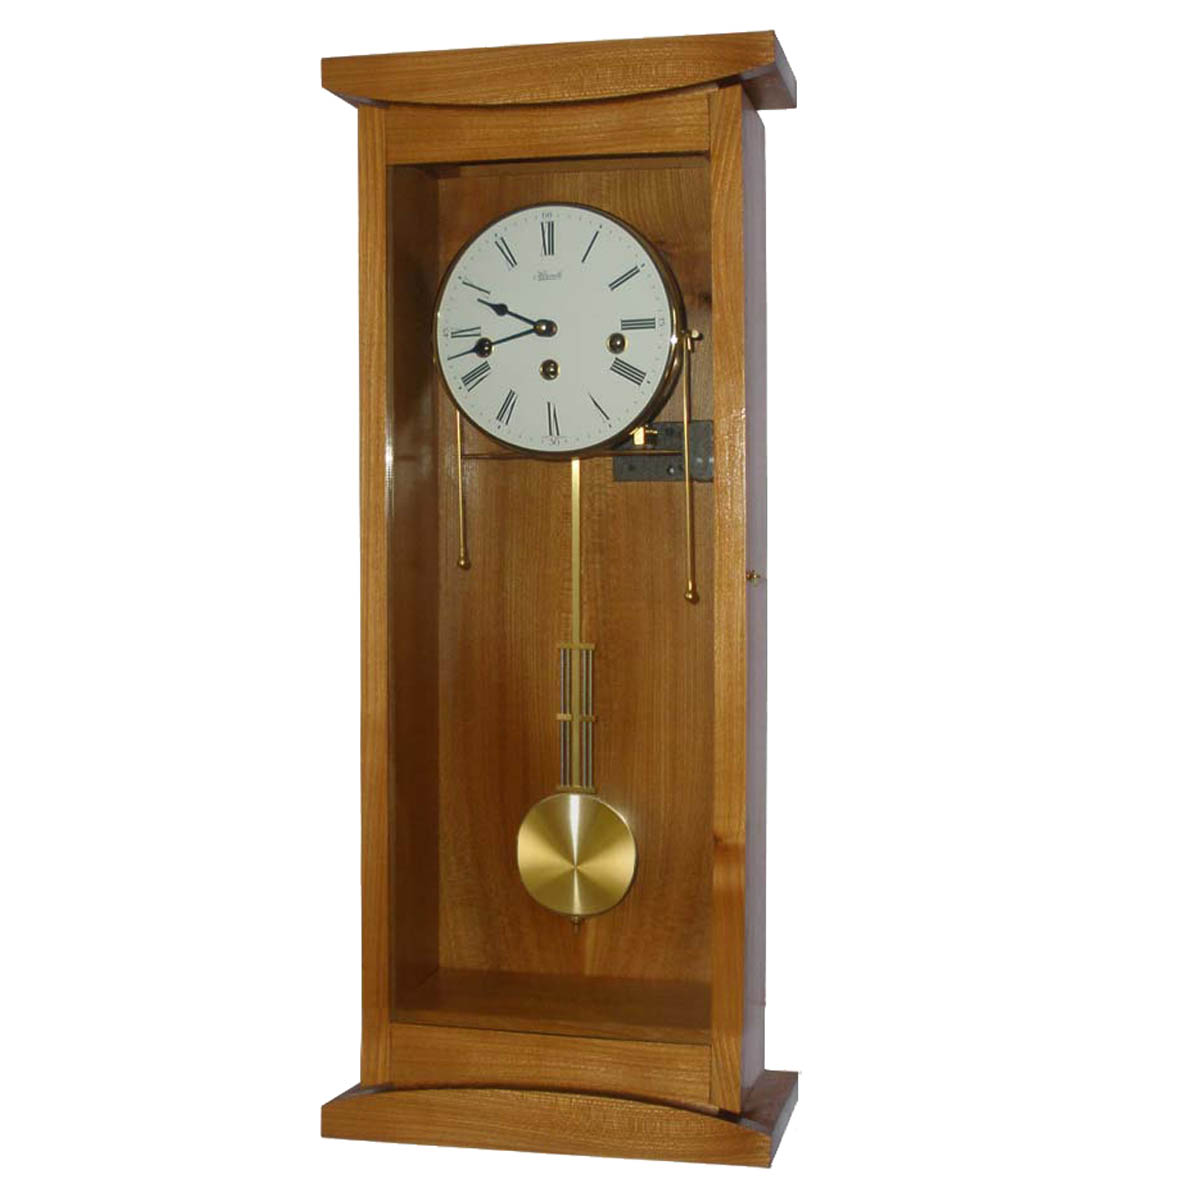 CAMLARG Regulator Wall Clock